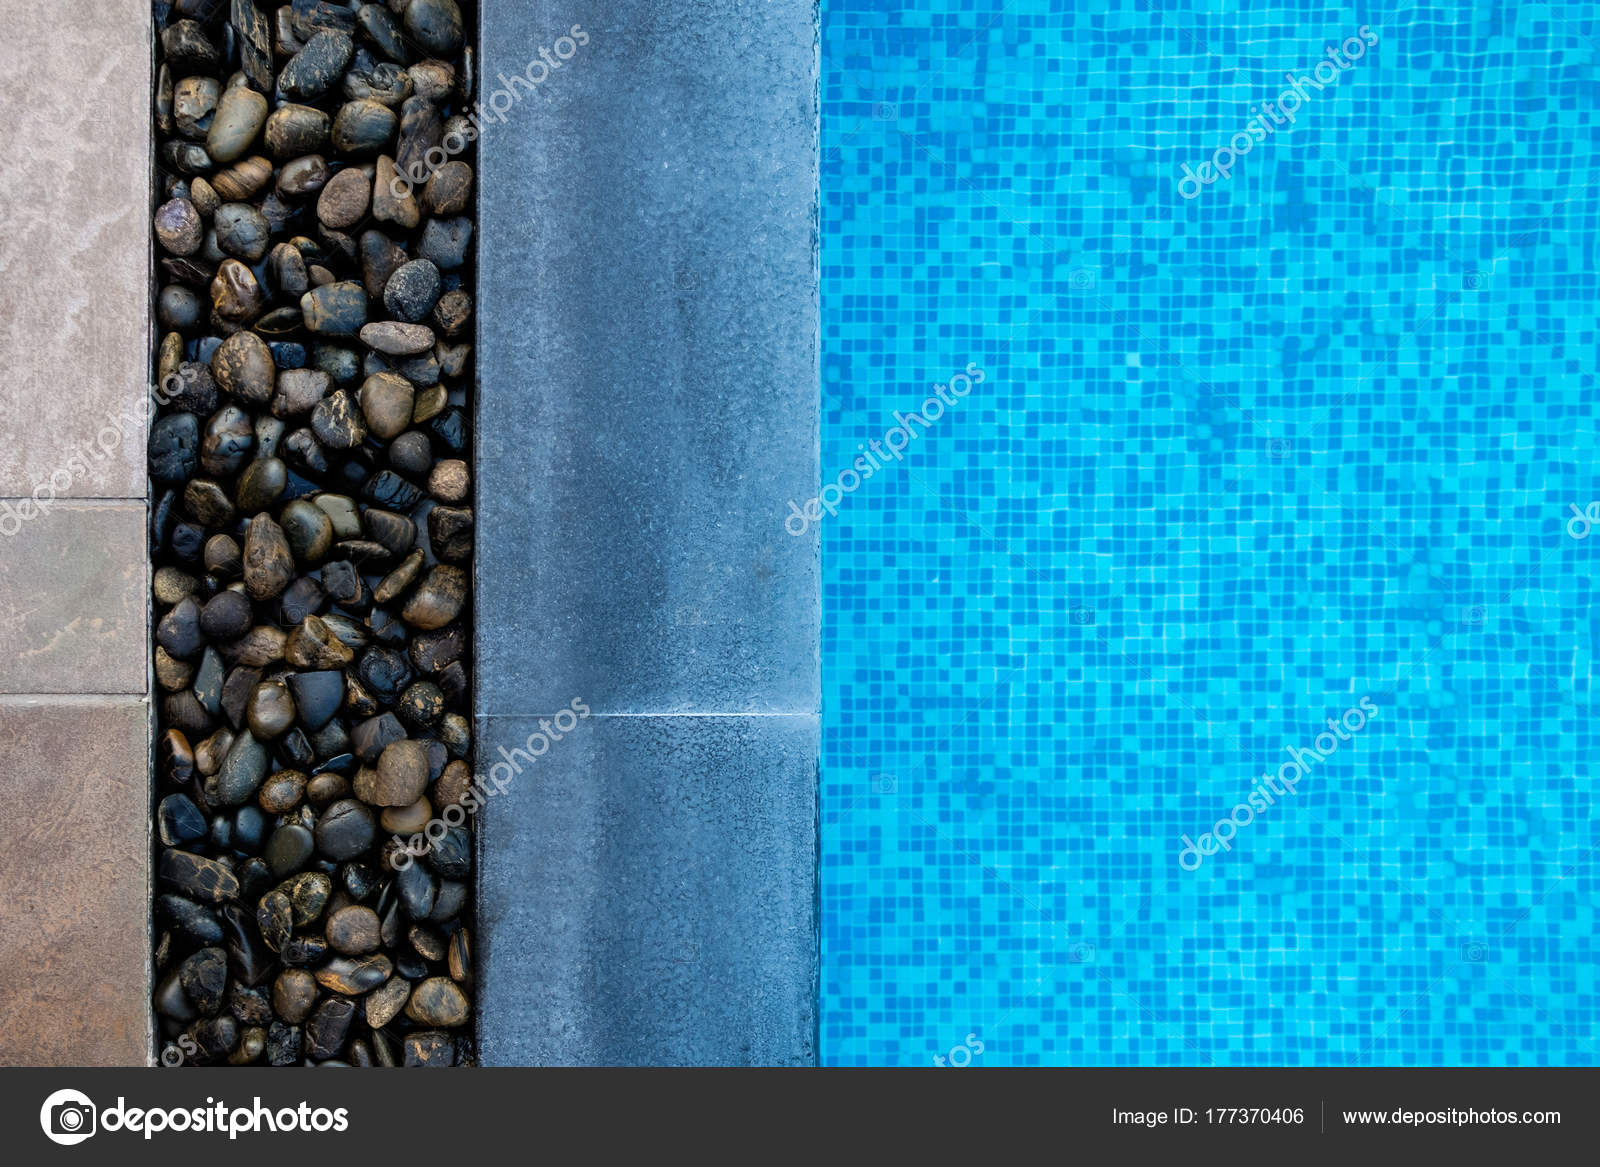 Edge of swimming pool with blue mosaic tiles at the bottom ...